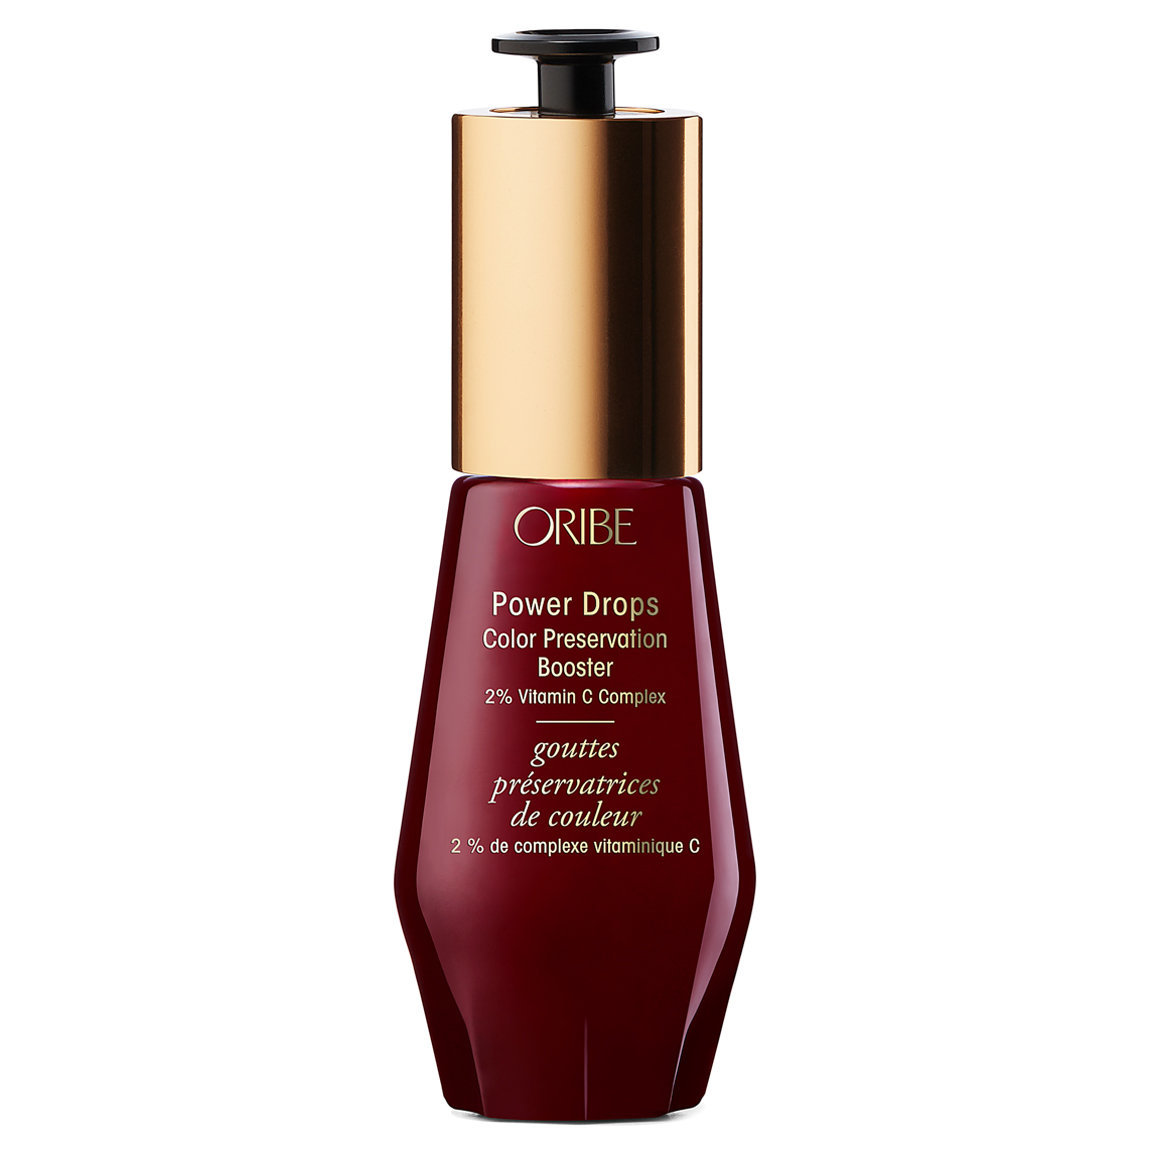 Oribe Power Drops Color Preservation Booster alternative view 1 - product swatch.